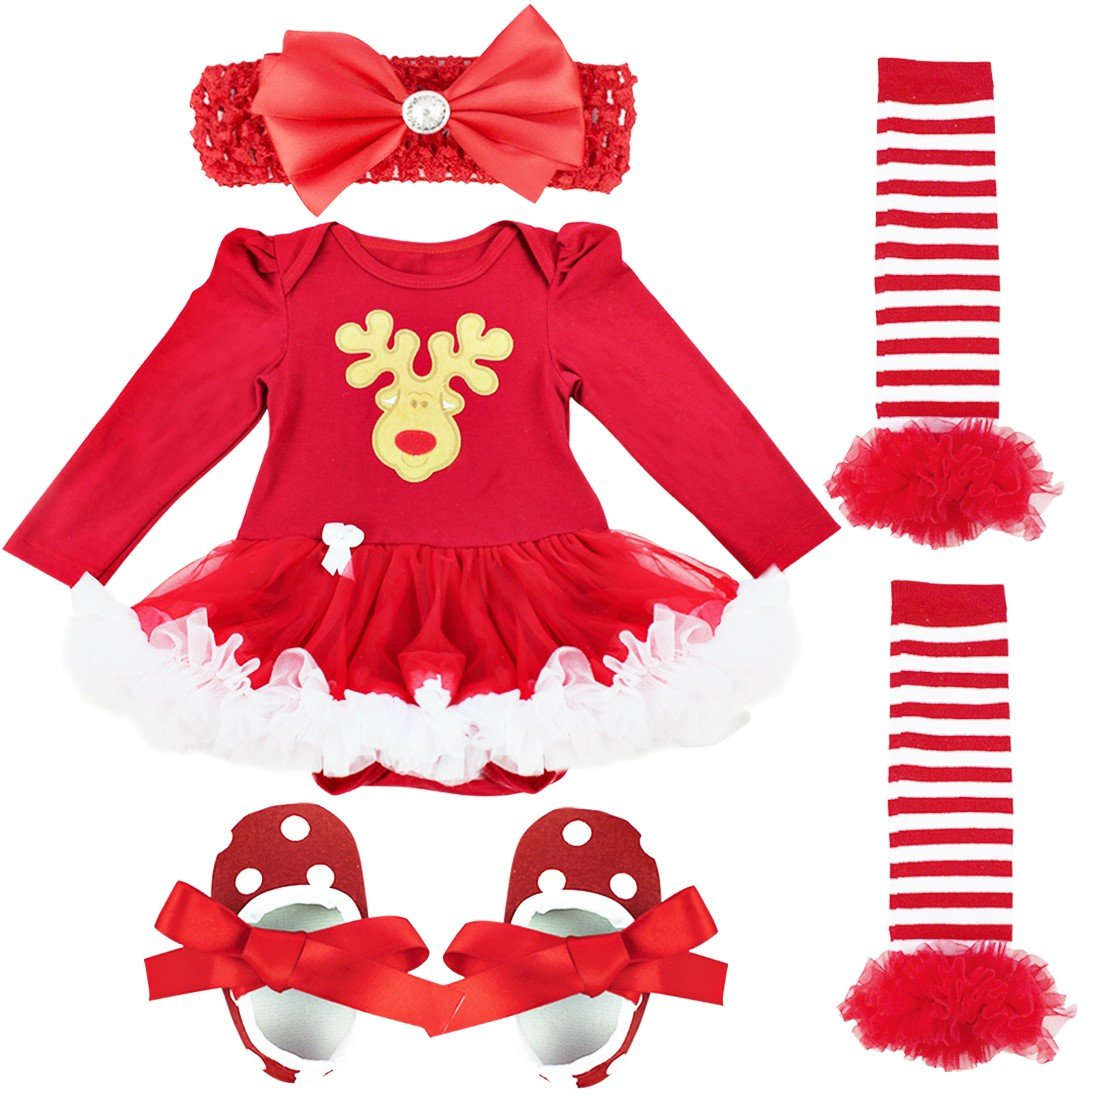 iiniim Infant Baby Girls My 1st Christmas Costume Romper with Tutu Skirt and Headband Fancy Party Outfits